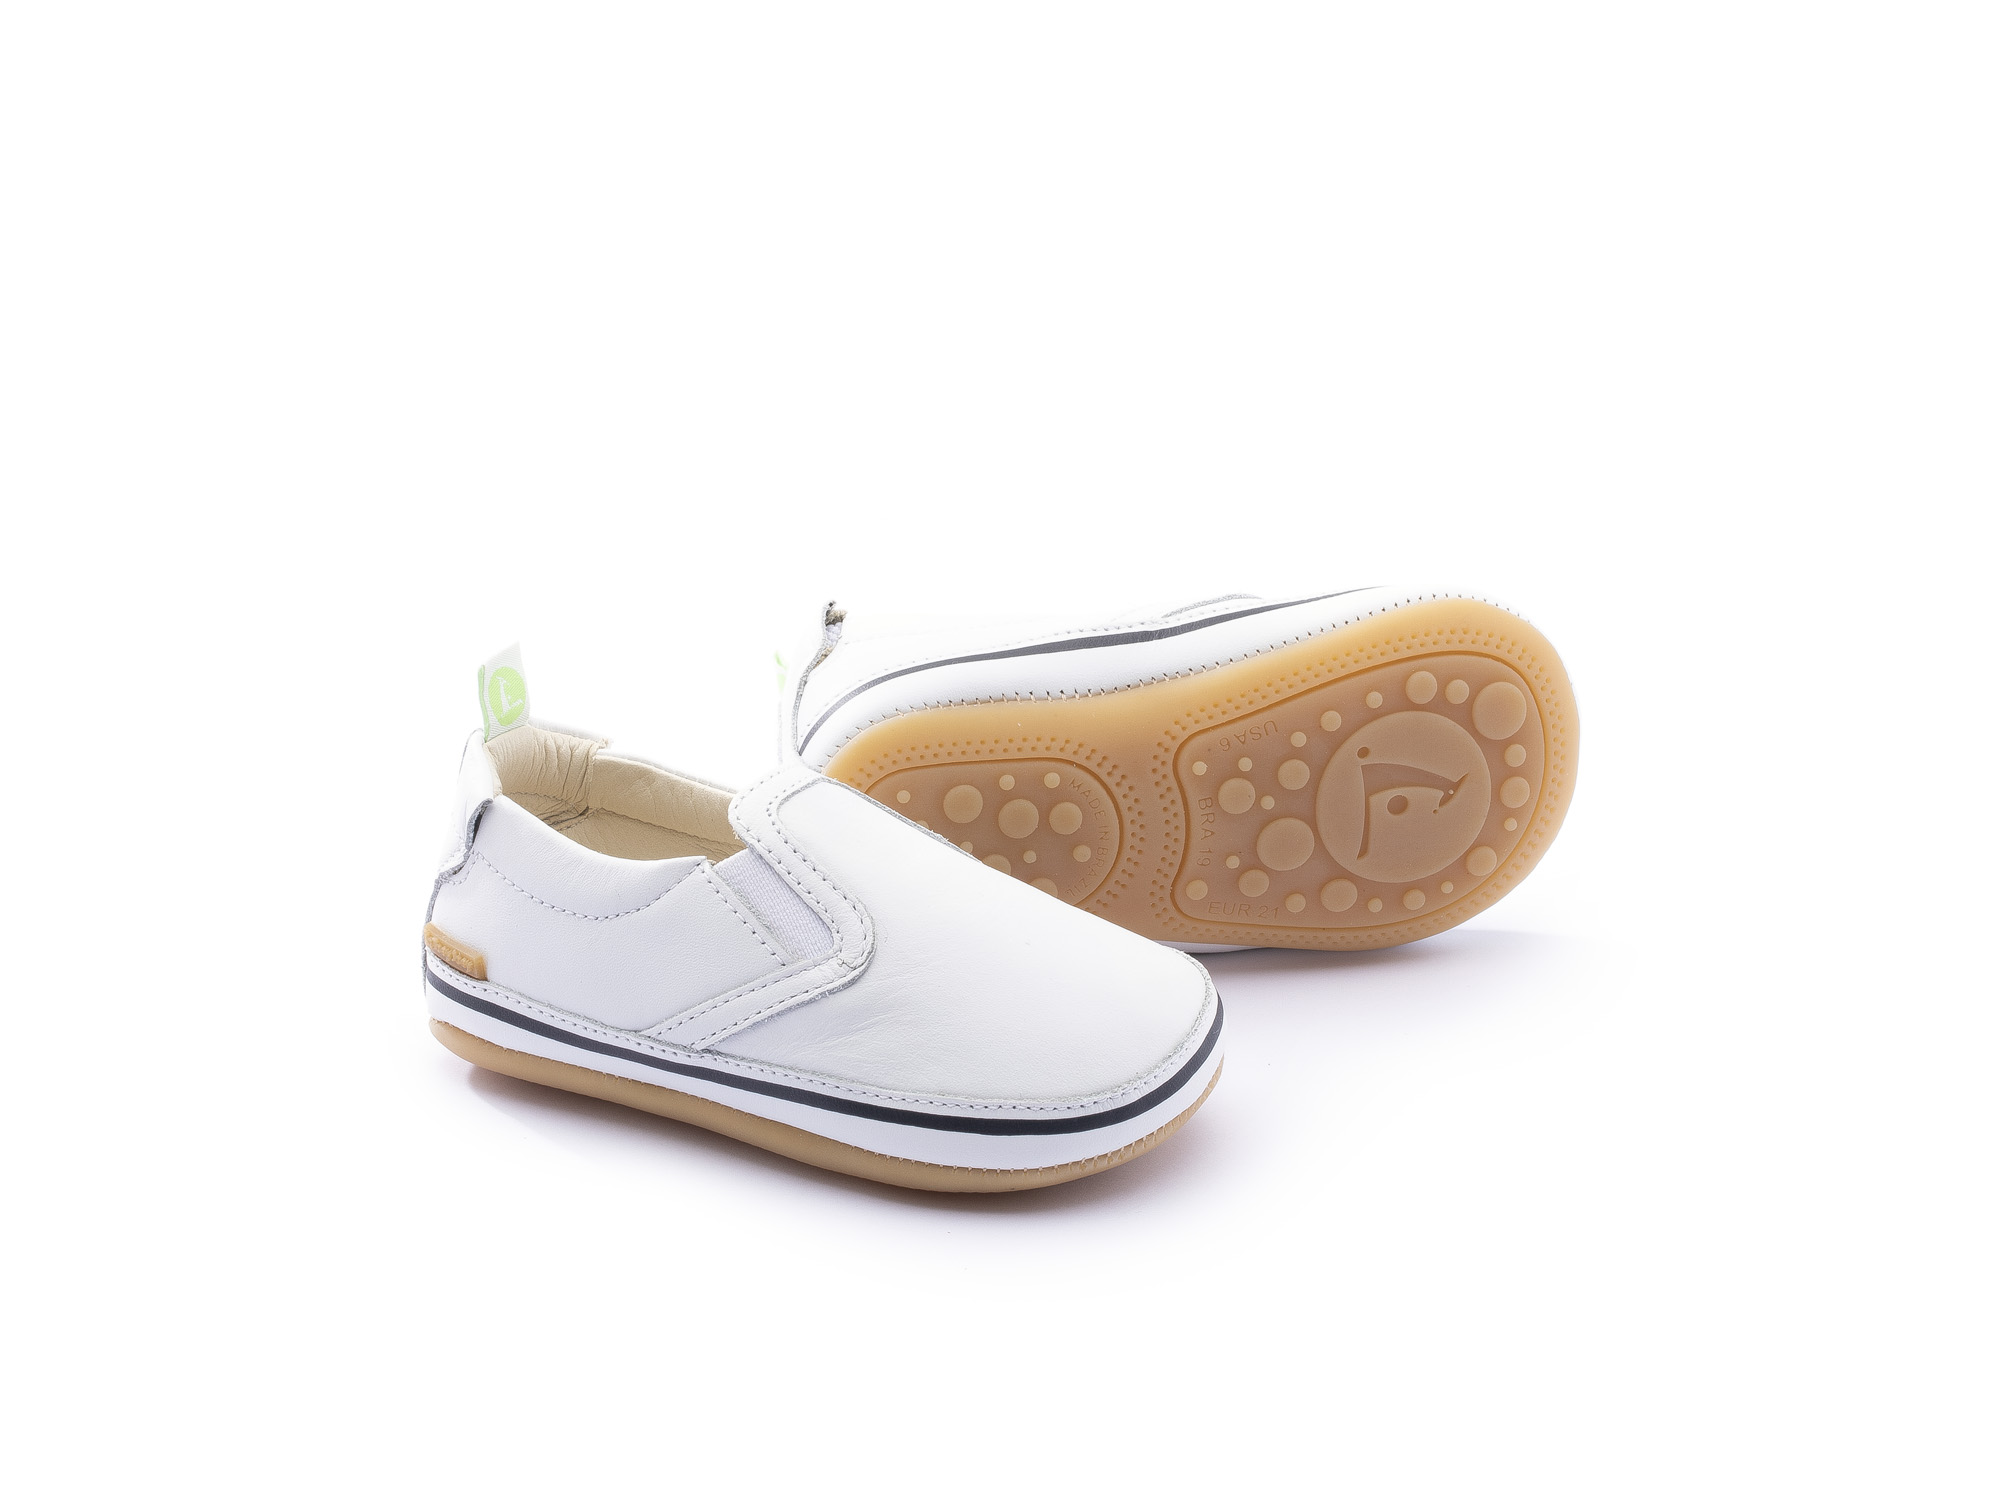 Sneaker Casual Woody White  Baby 0 à 2 anos - 0